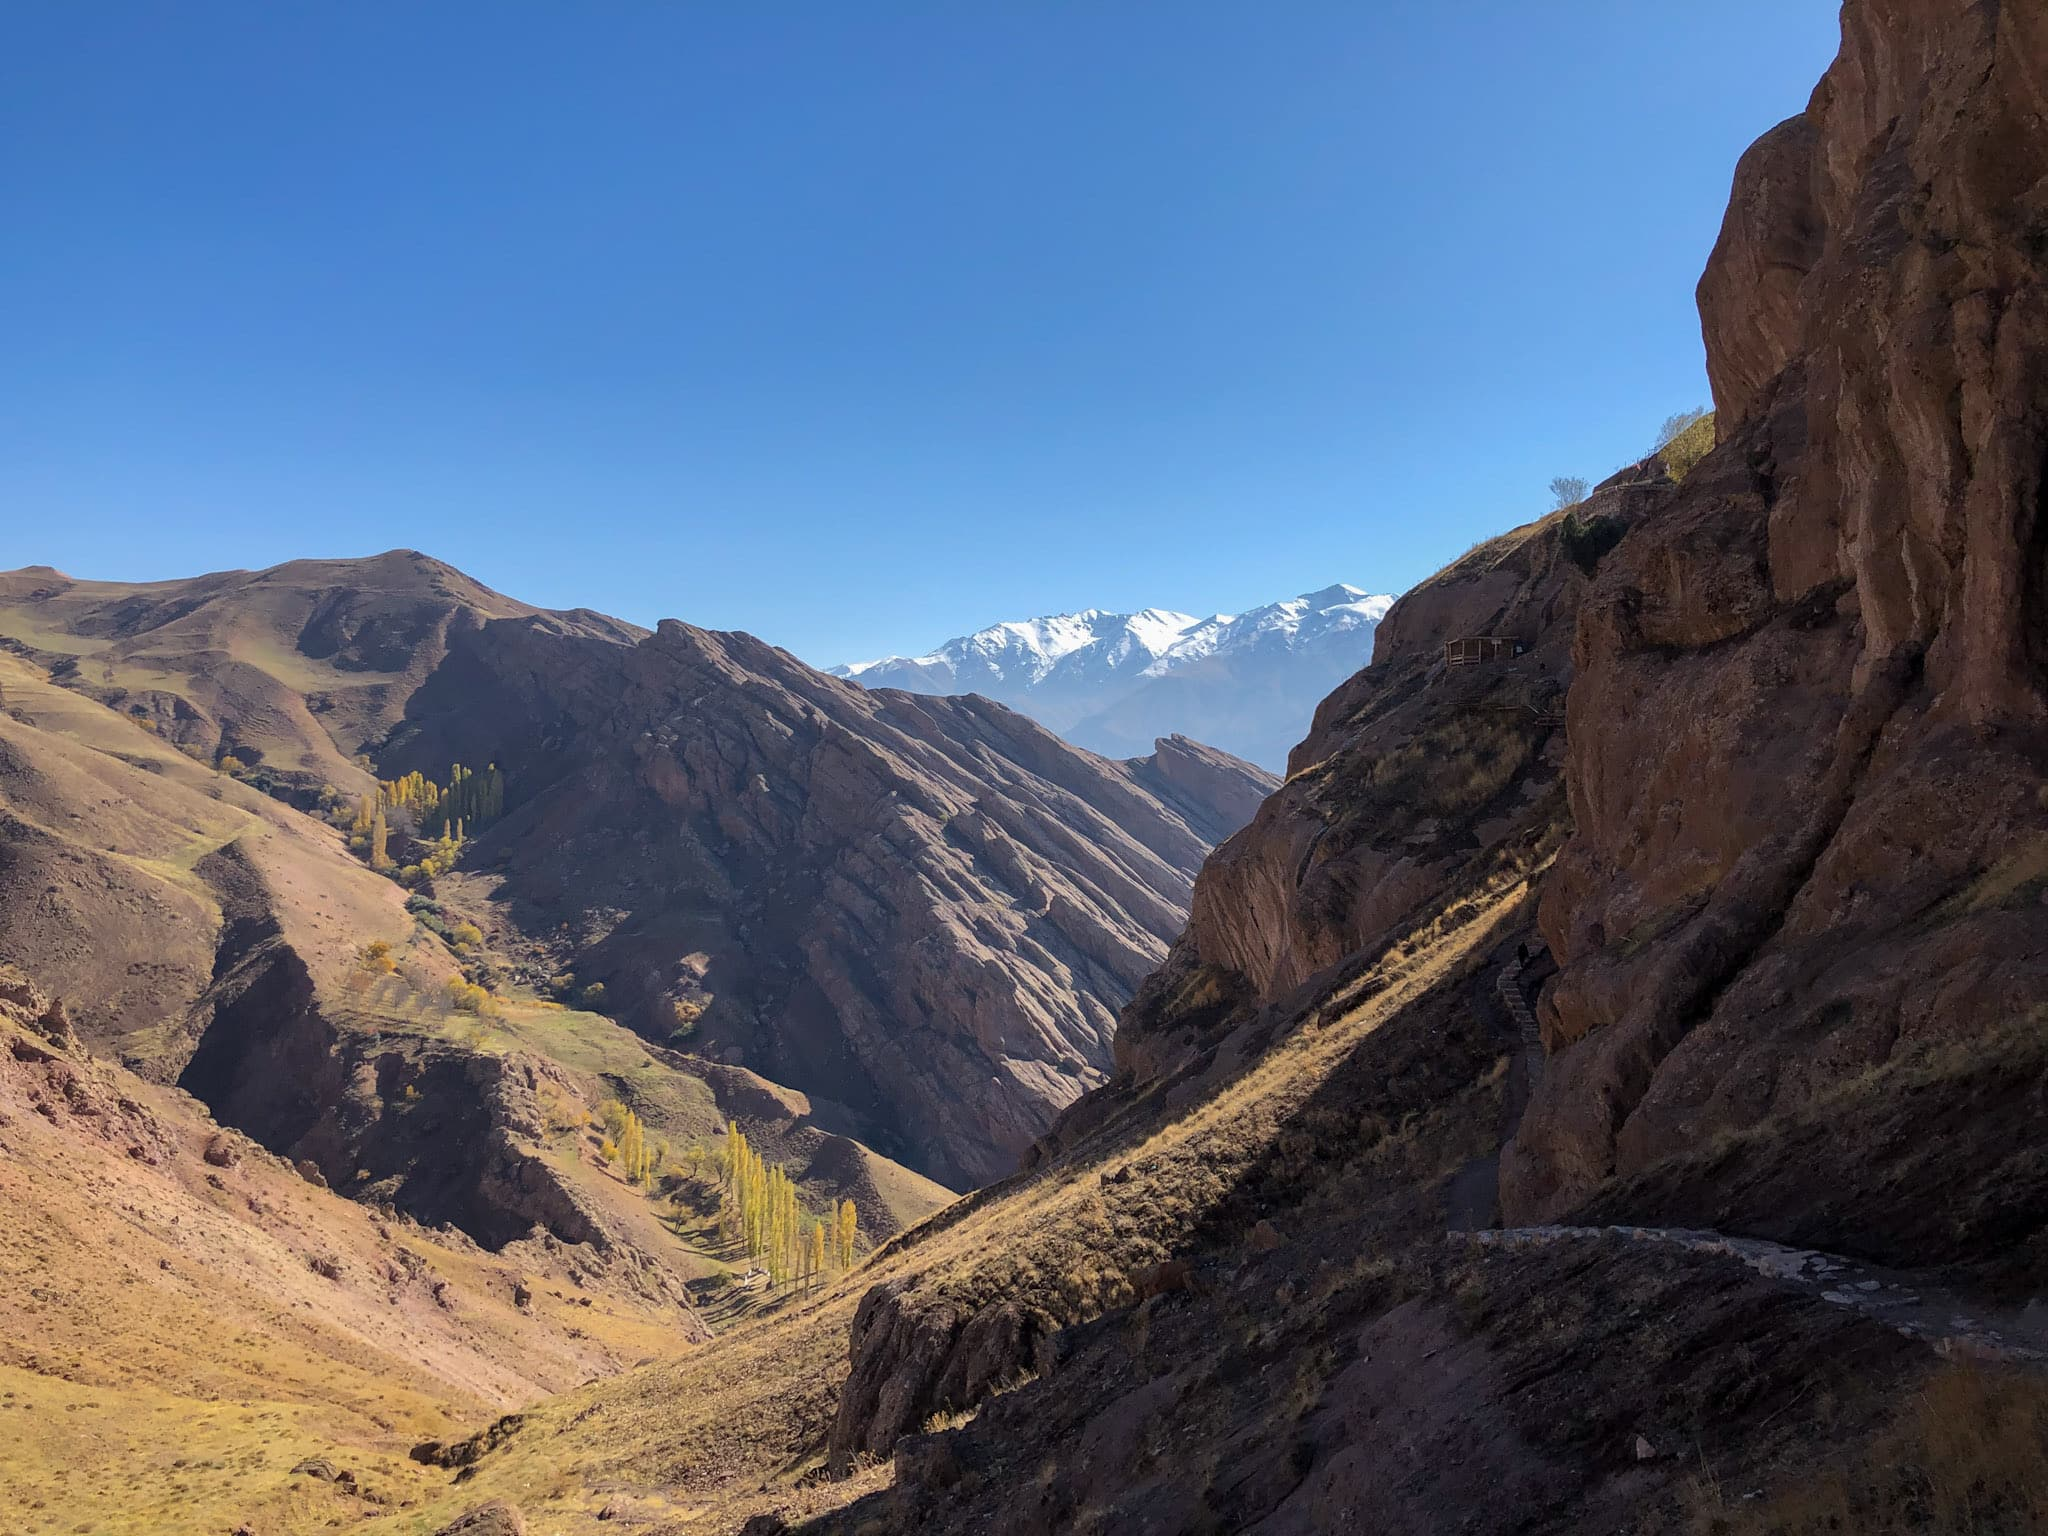 Alamut Valley in northern Iran